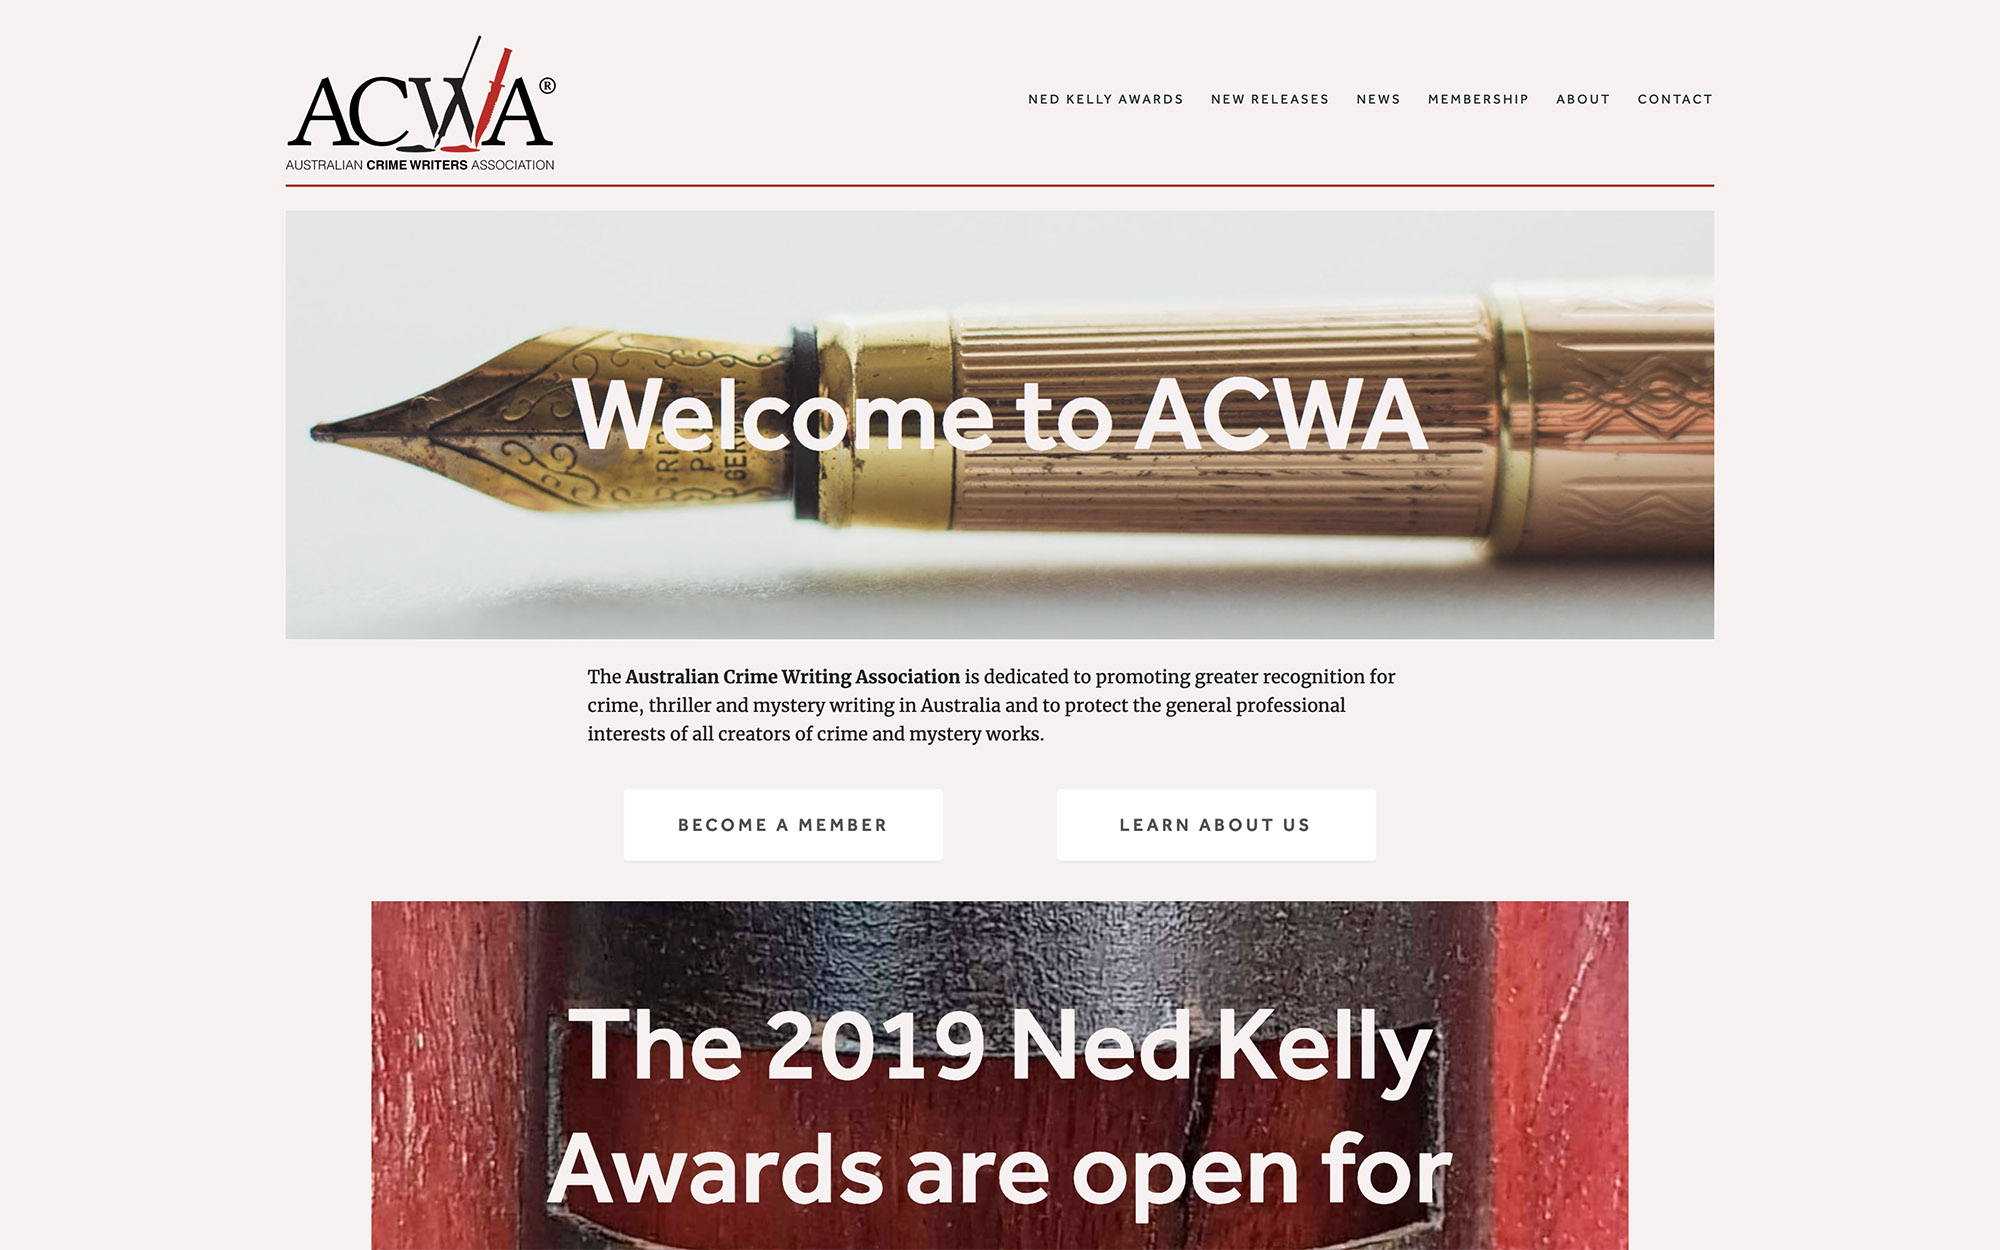 Australian Crime Writers Association - Australia's key organisation for crime writers and writing, and the administrators of the Ned Kelly Awards.Site designed & launched February 2019.